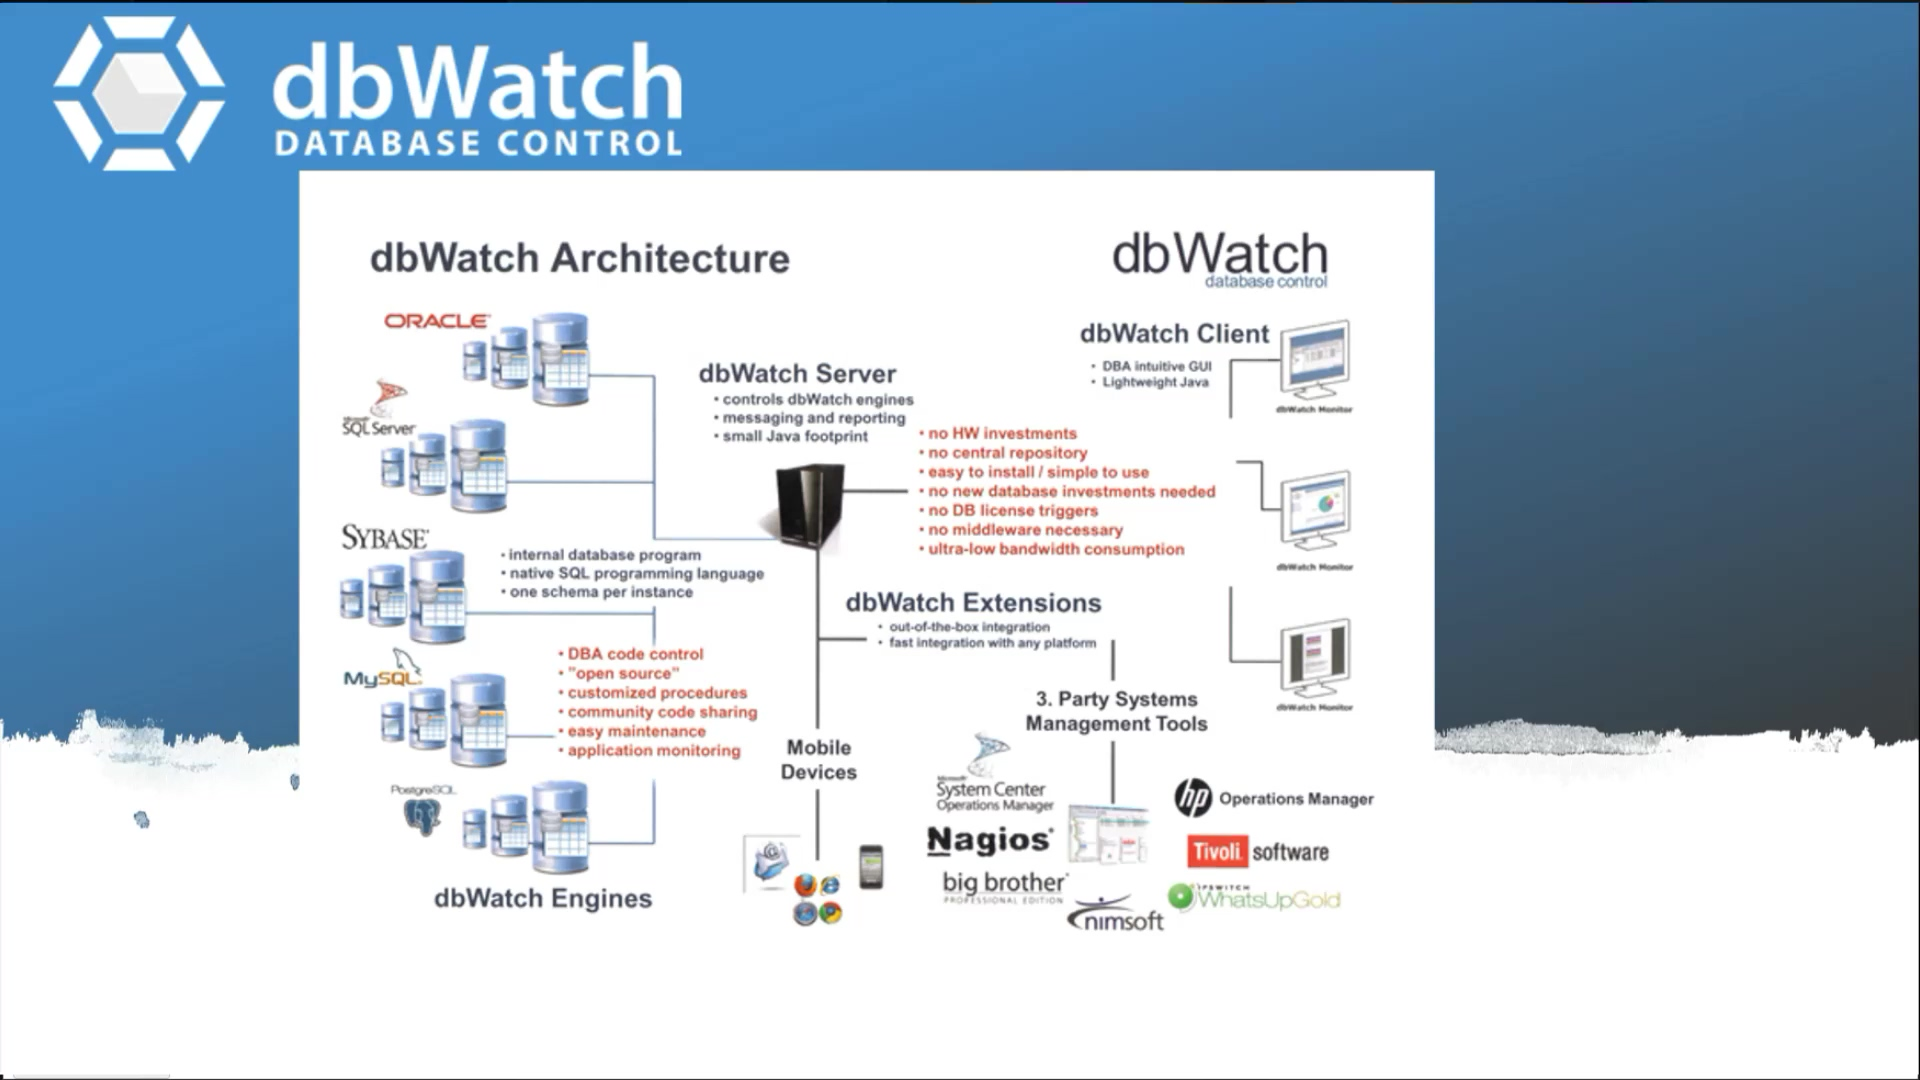 dbWatch Episode 2A May 29, 2019